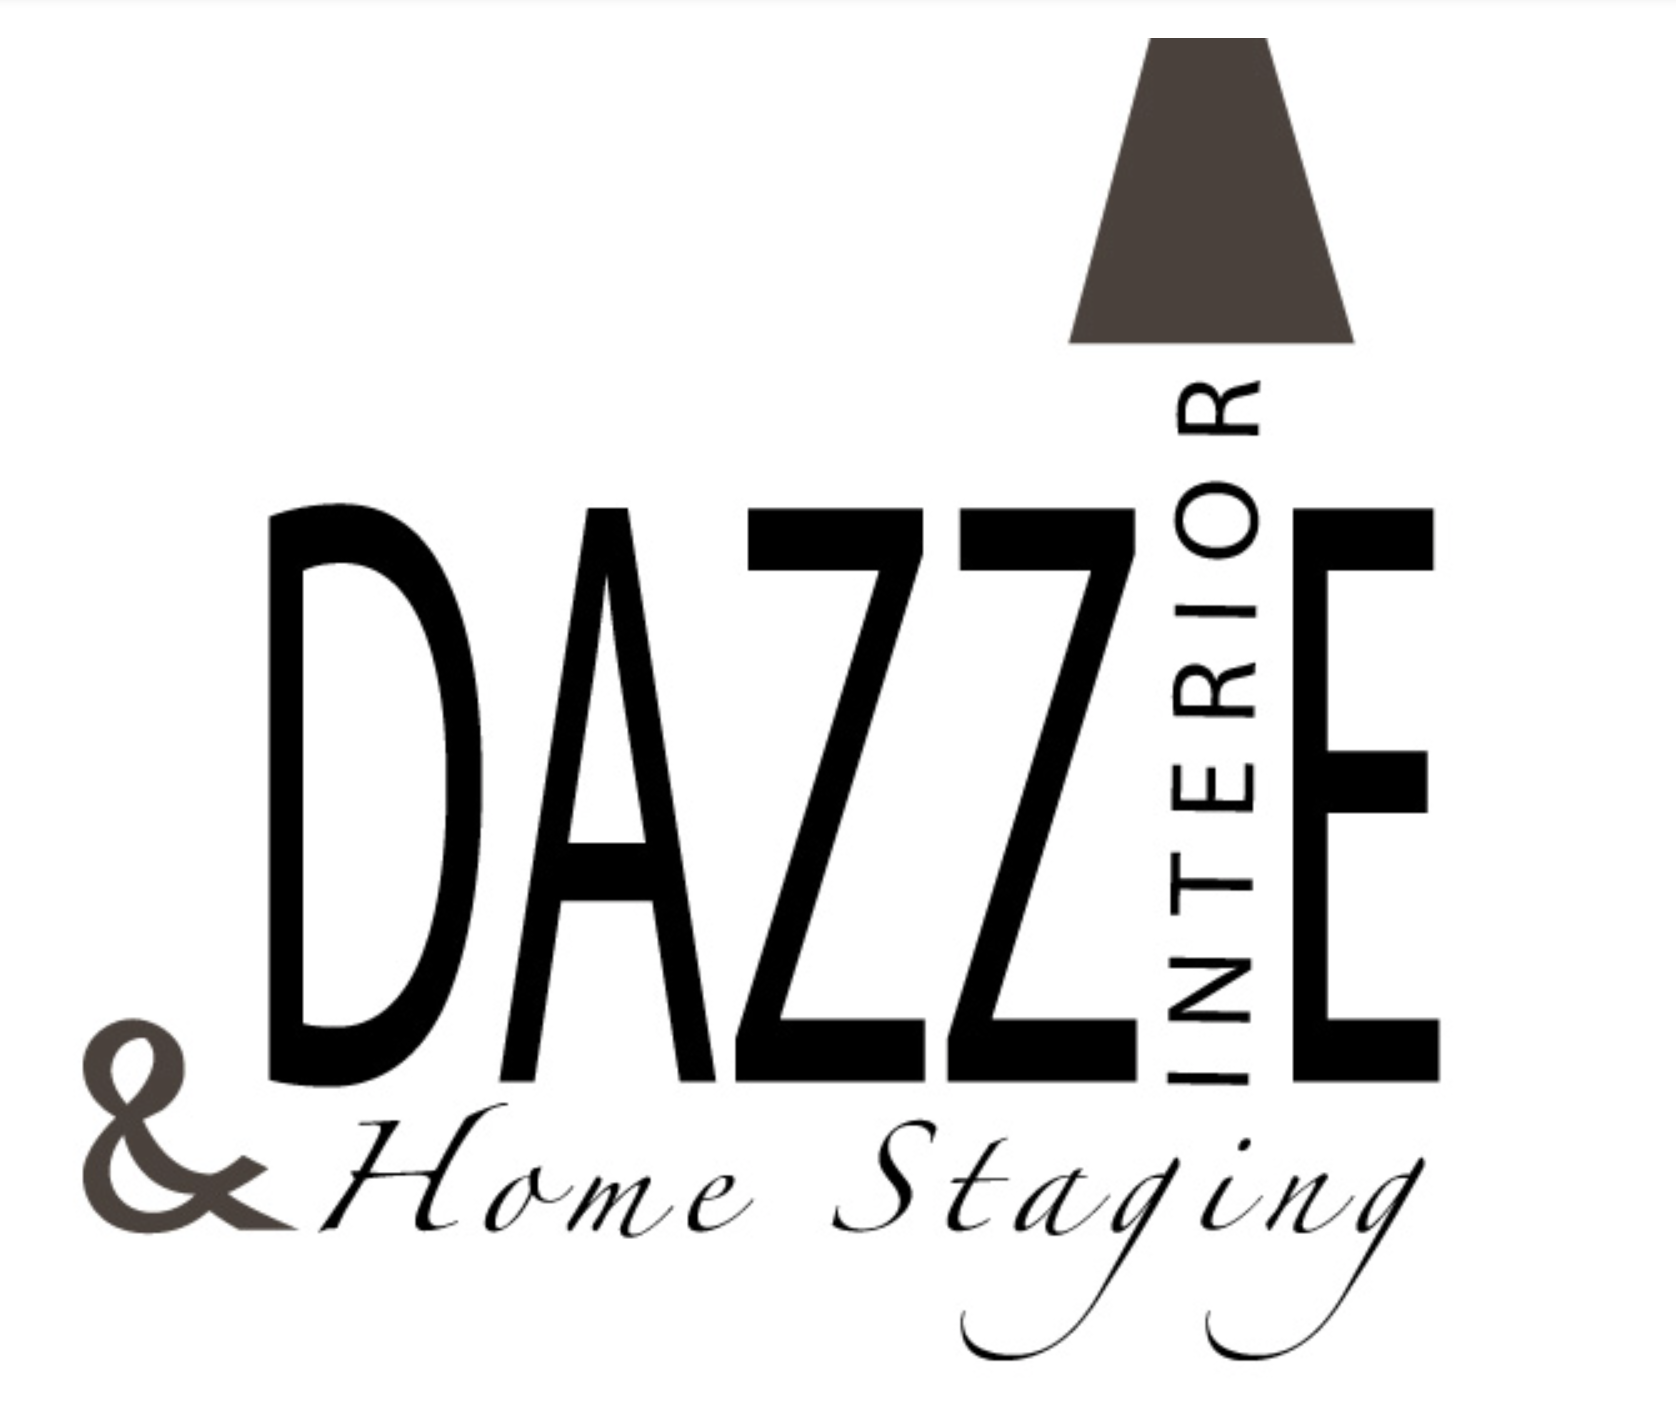 logo Dazzle Interior Home Staging  Black&White version logo by Ganna Sheyko / Anna Art Design